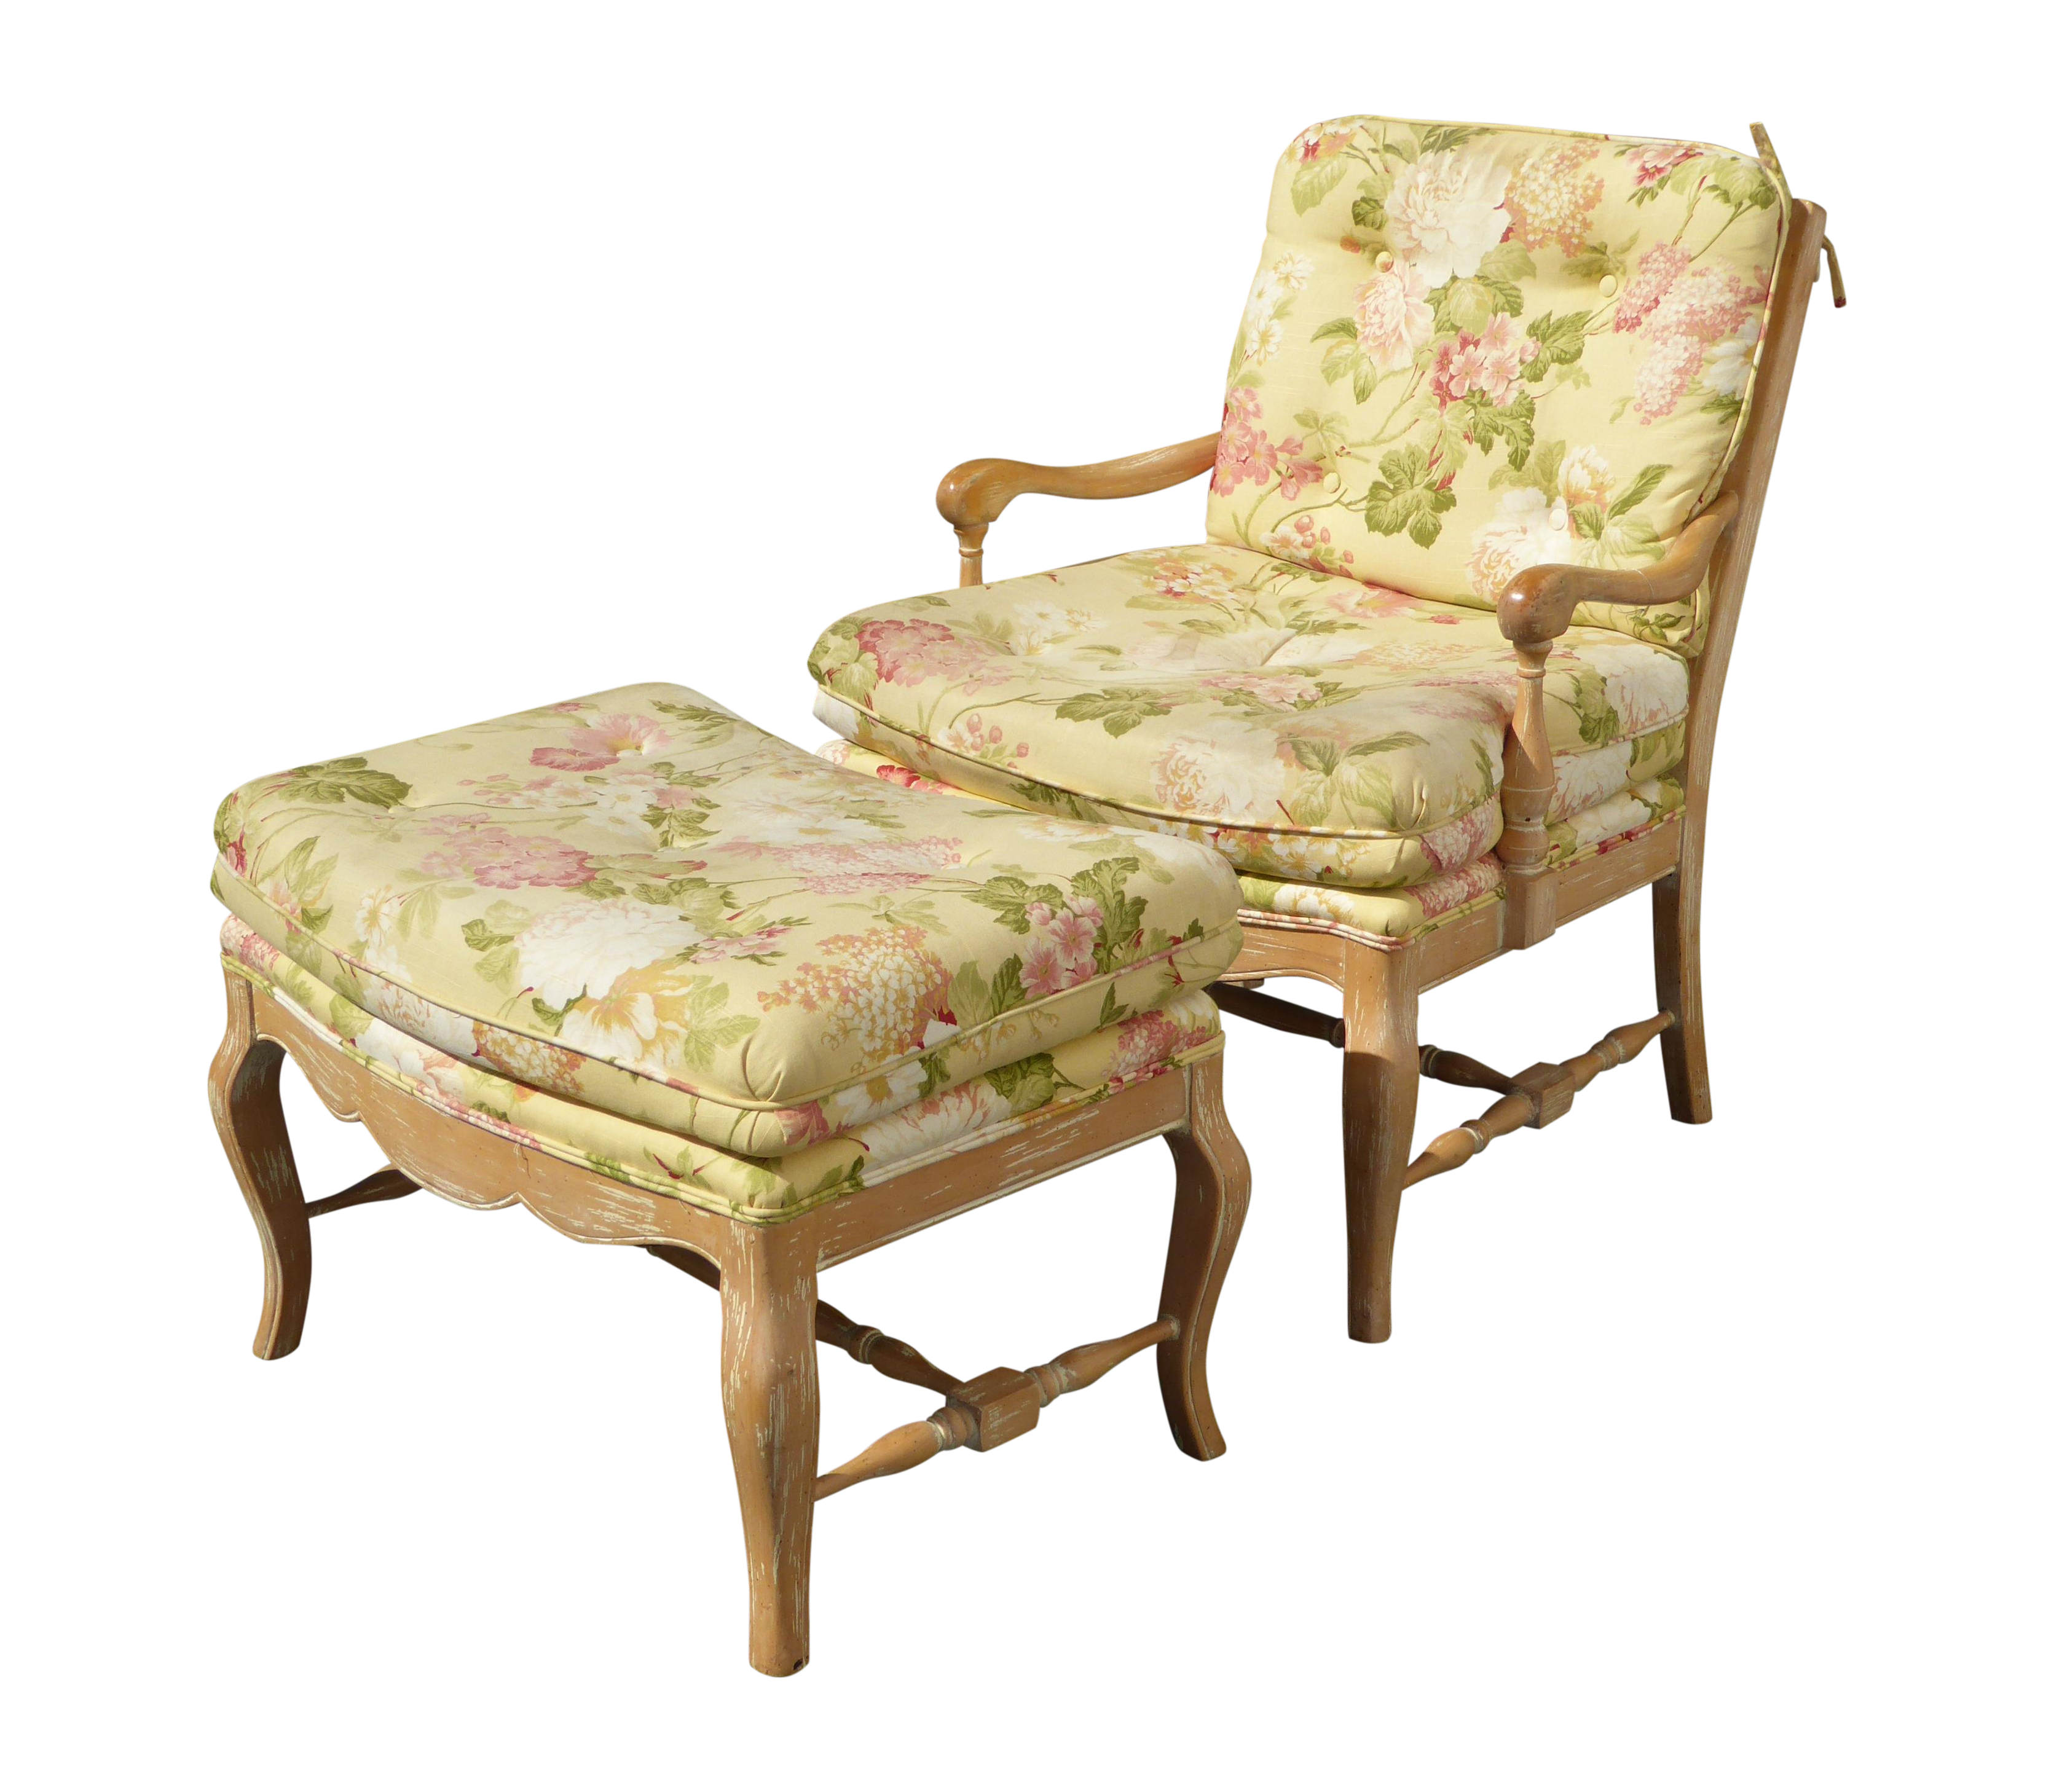 French Country Yellow Floral Accent Chair & Ottoman